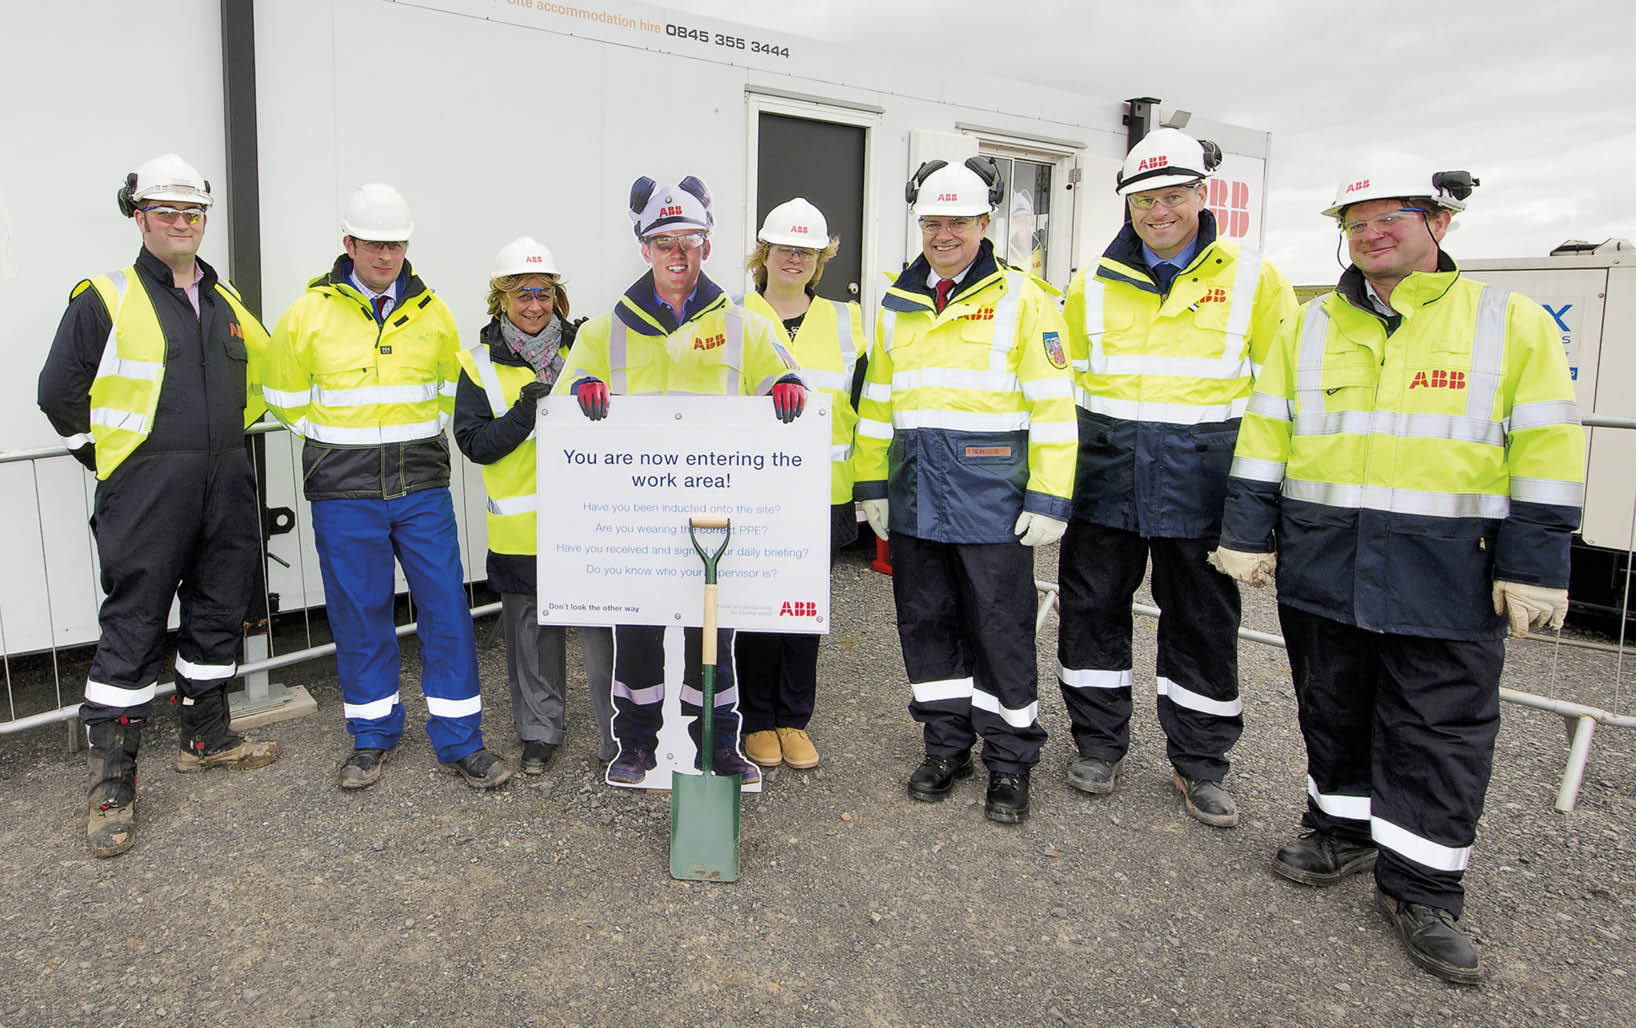 ABB Health & Safety Campaign - Site Standee Production